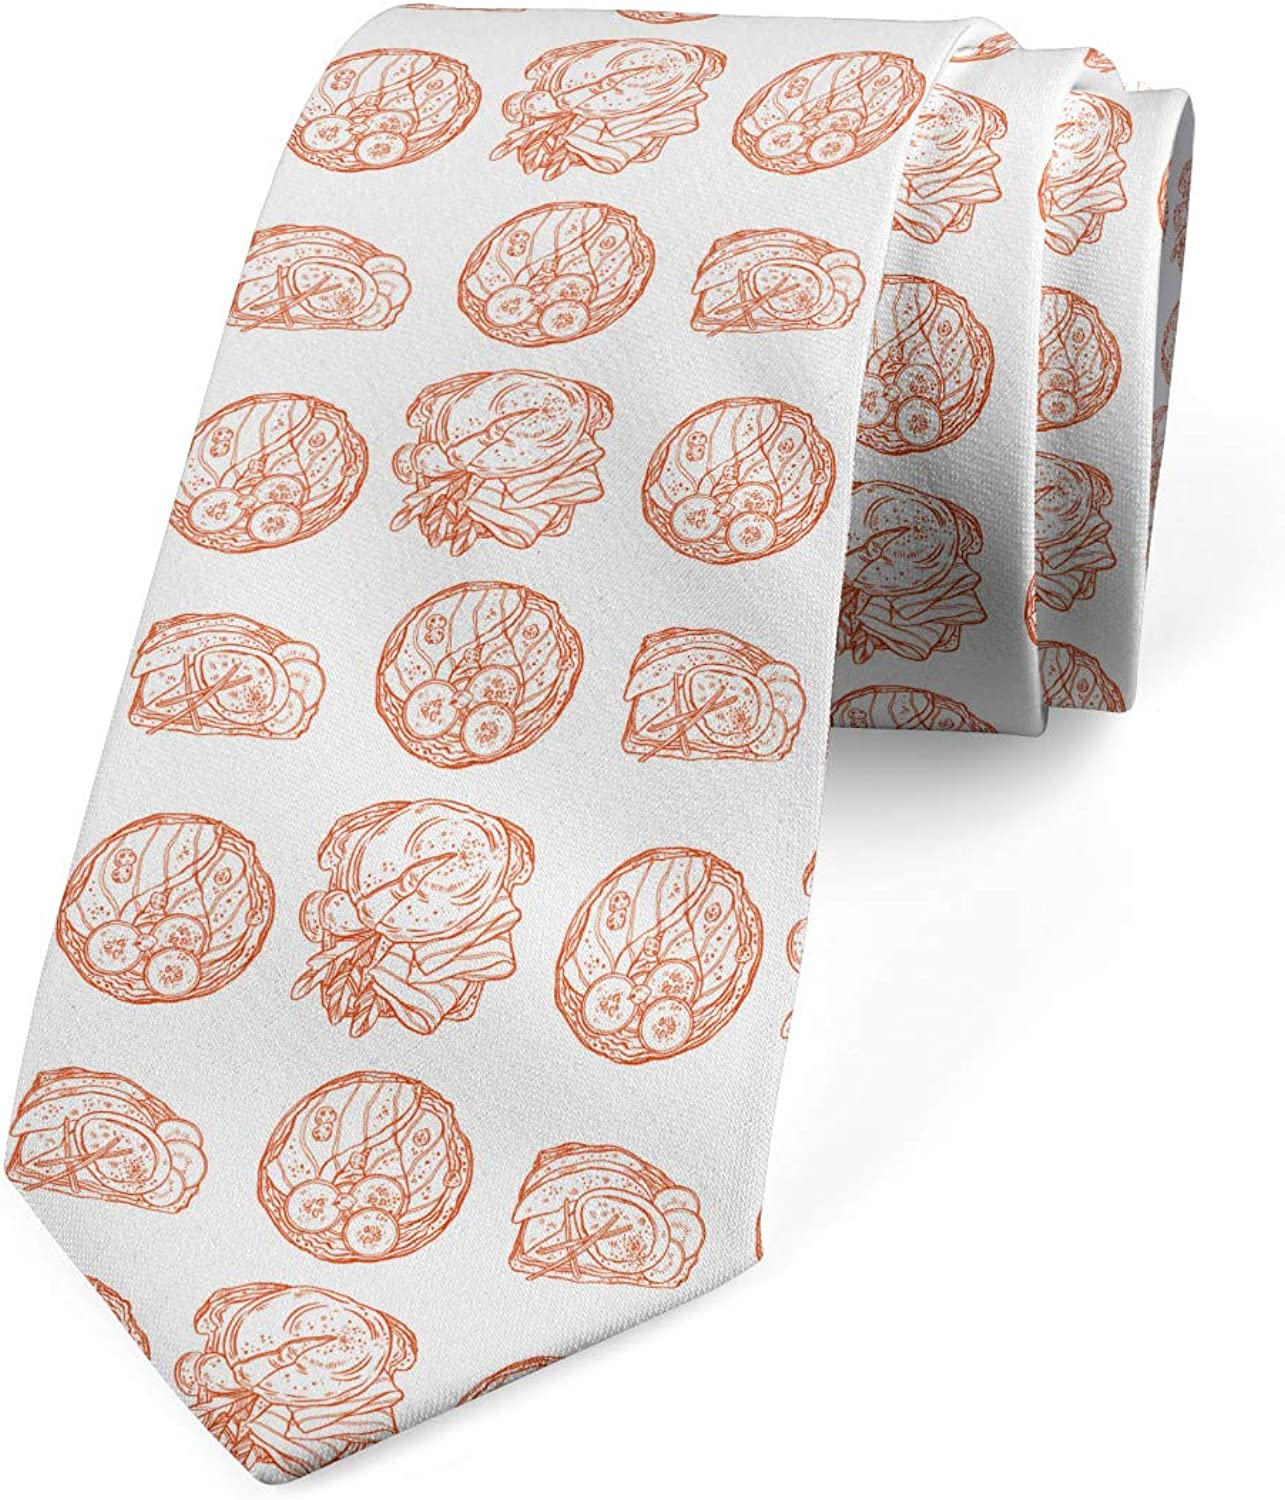 3.7 Ambesonne Mens Tie Pale Vermilion and White Delicious Breakfast Toasts